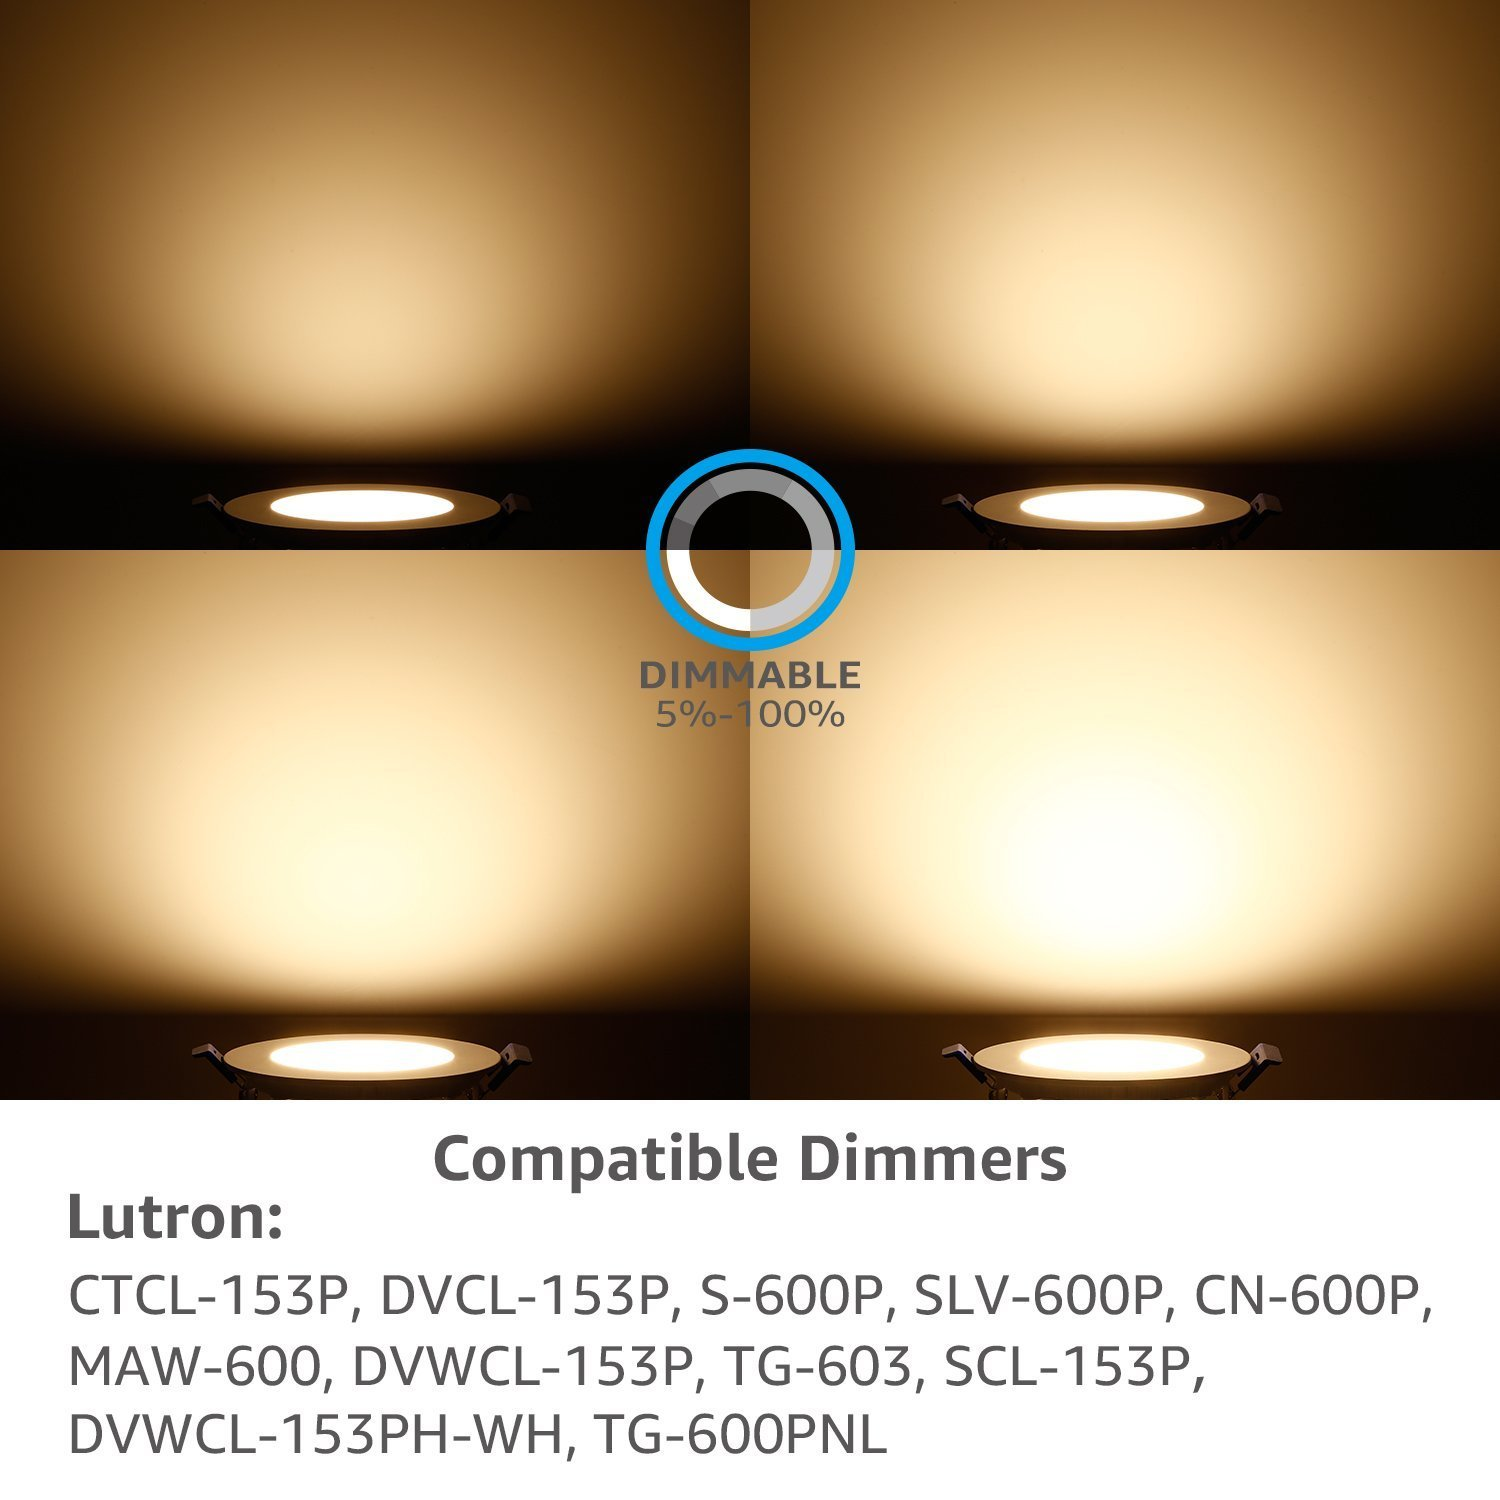 10W 4'' Ultra-thin Recessed Ceiling Light with Junction Box, Dimmable Can-Killer Airtight Downlight, 650lm 80W Equivalent, ETL-listed and Energy Star Certified, 3000K Warm White, Pack of 2 by TORCHSTAR (Image #6)